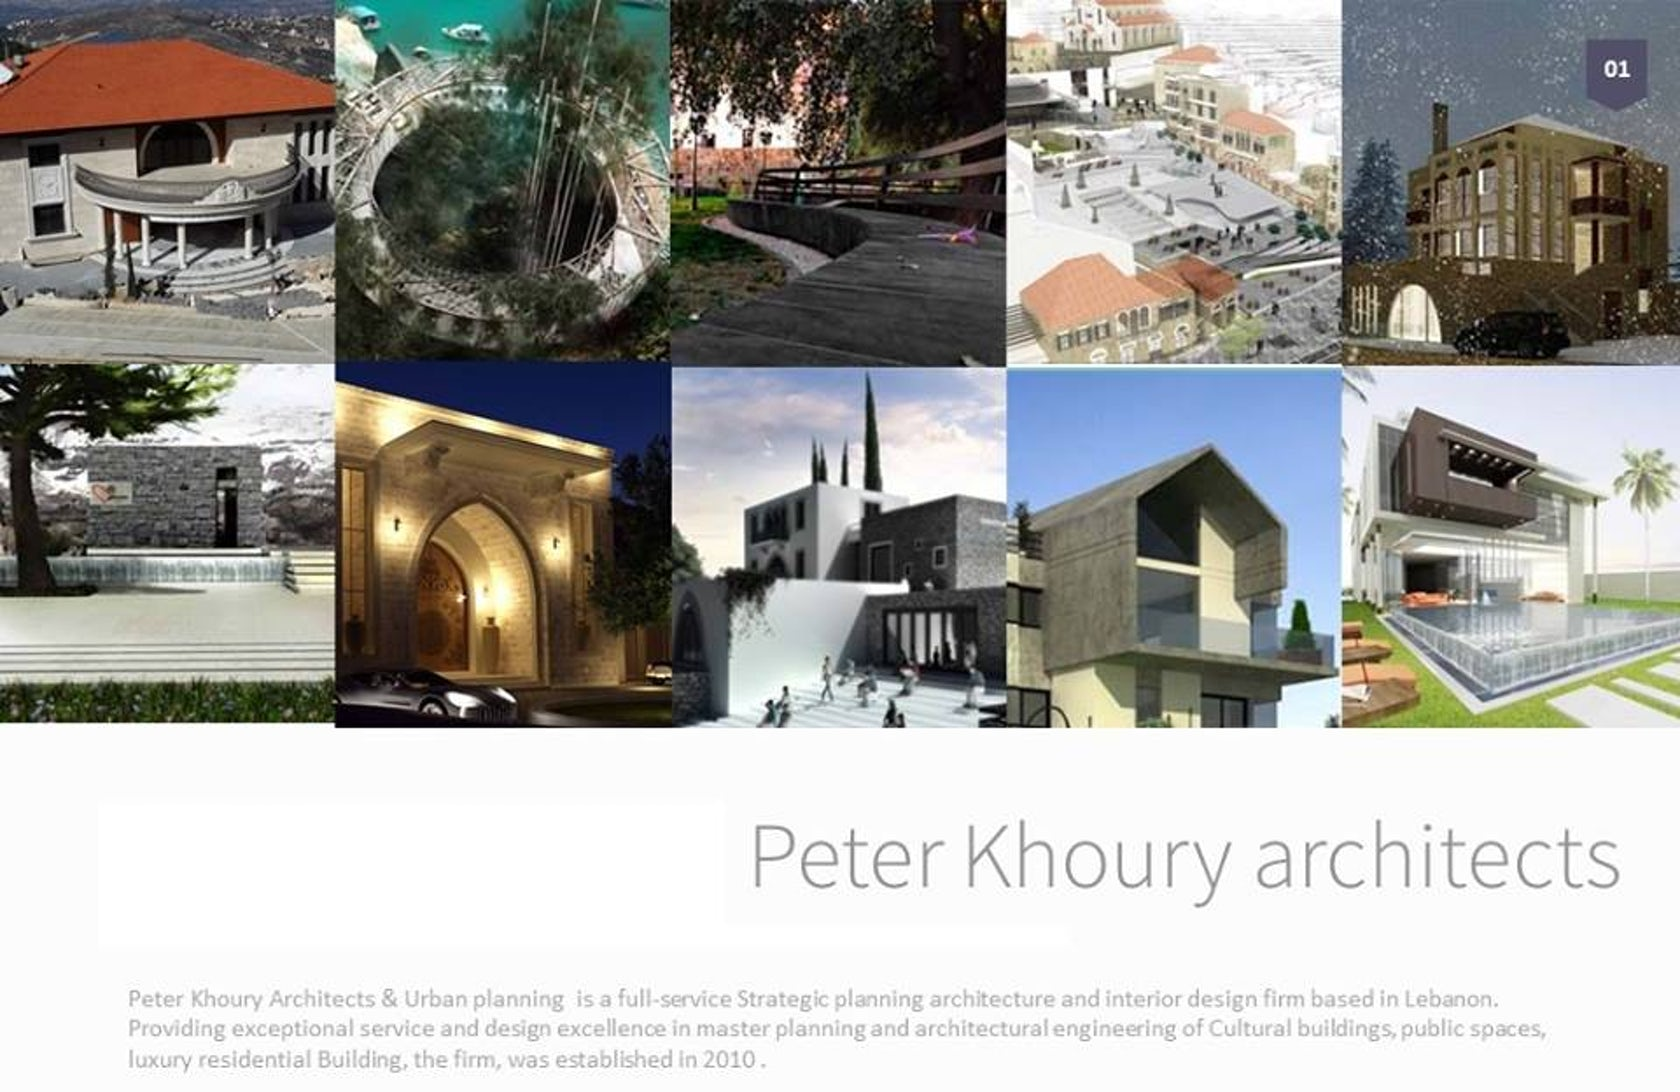 Peter Khoury Architects Urban Planning On Architizer